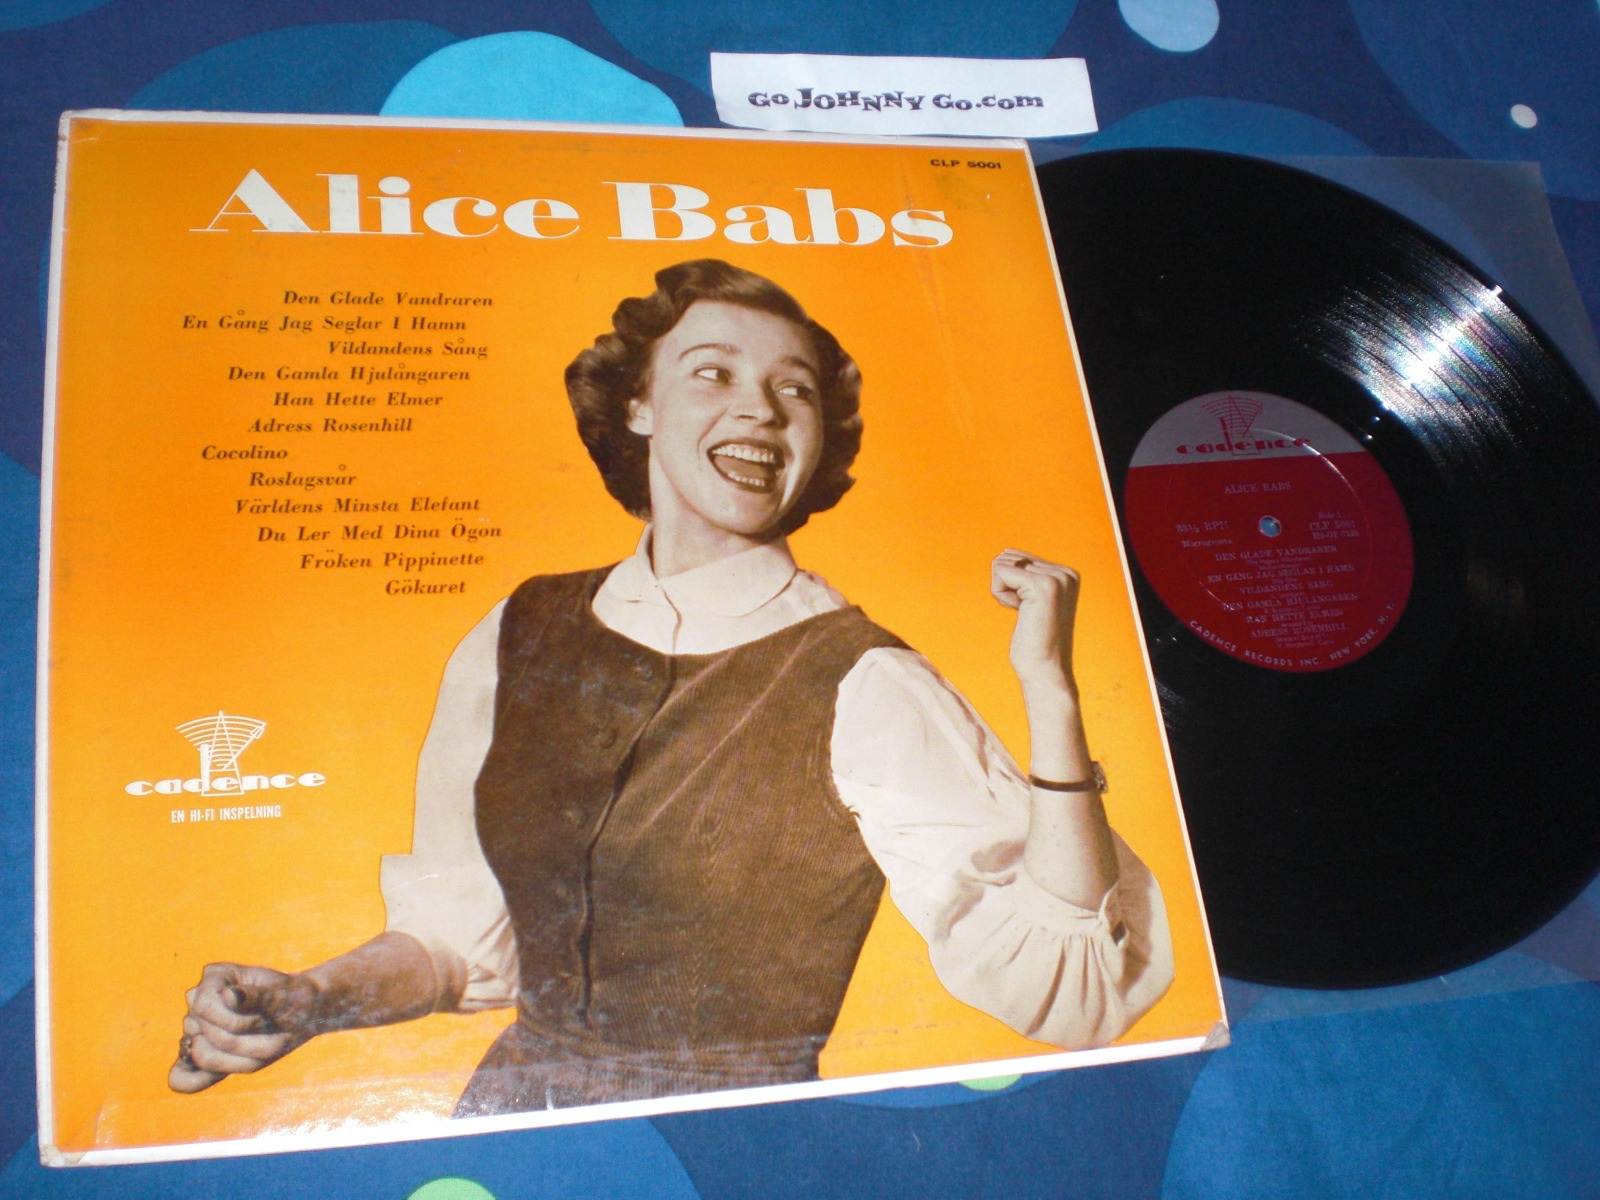 Babs,Alice Alice+Babs LP